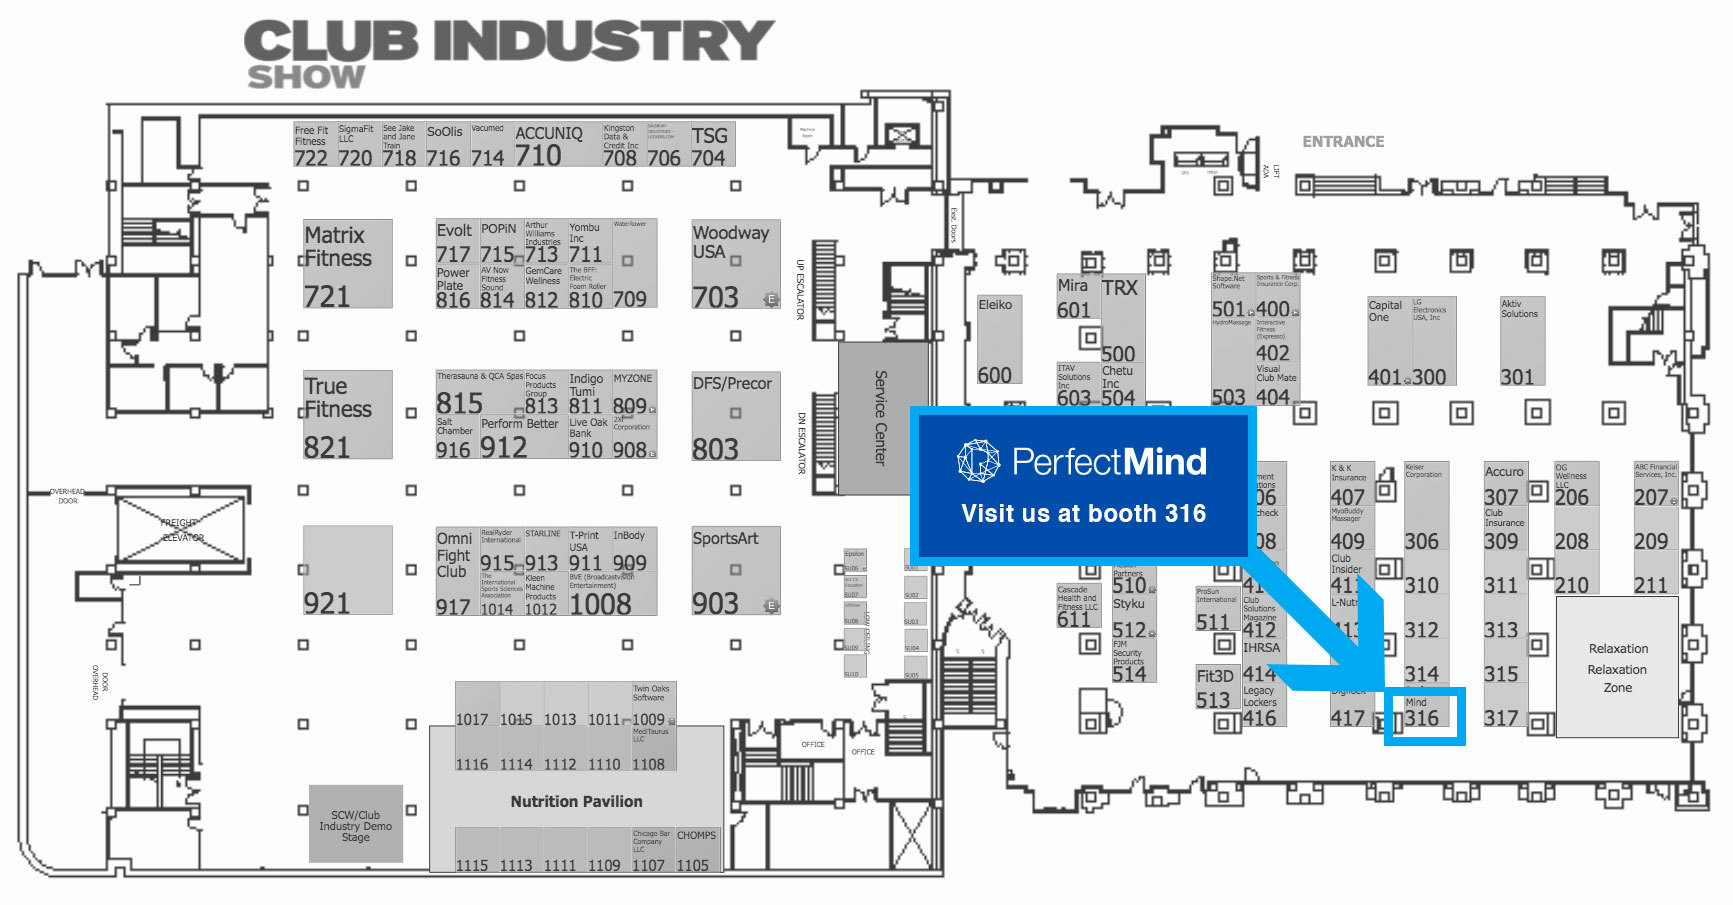 PerfectMind_Booth_Map_Club_Industry_Show